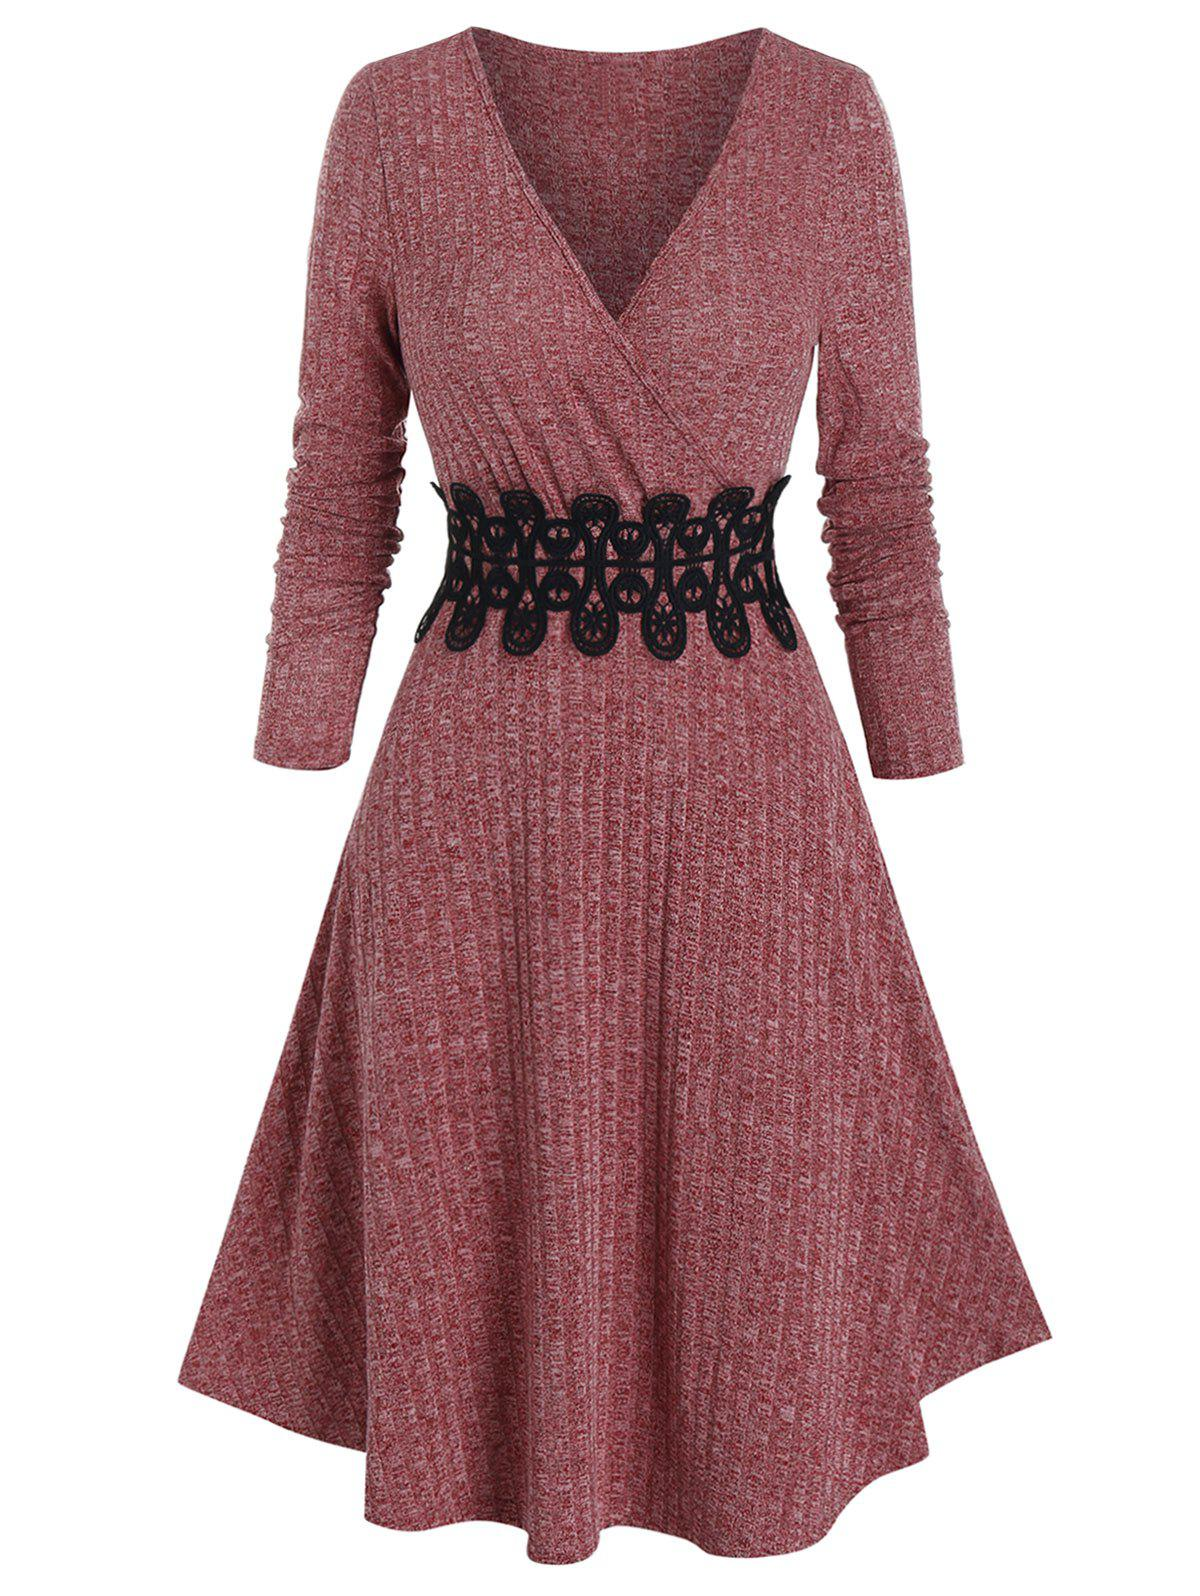 Waist Applique Ribbed V Neck Wrap Dress - DEEP RED 2XL